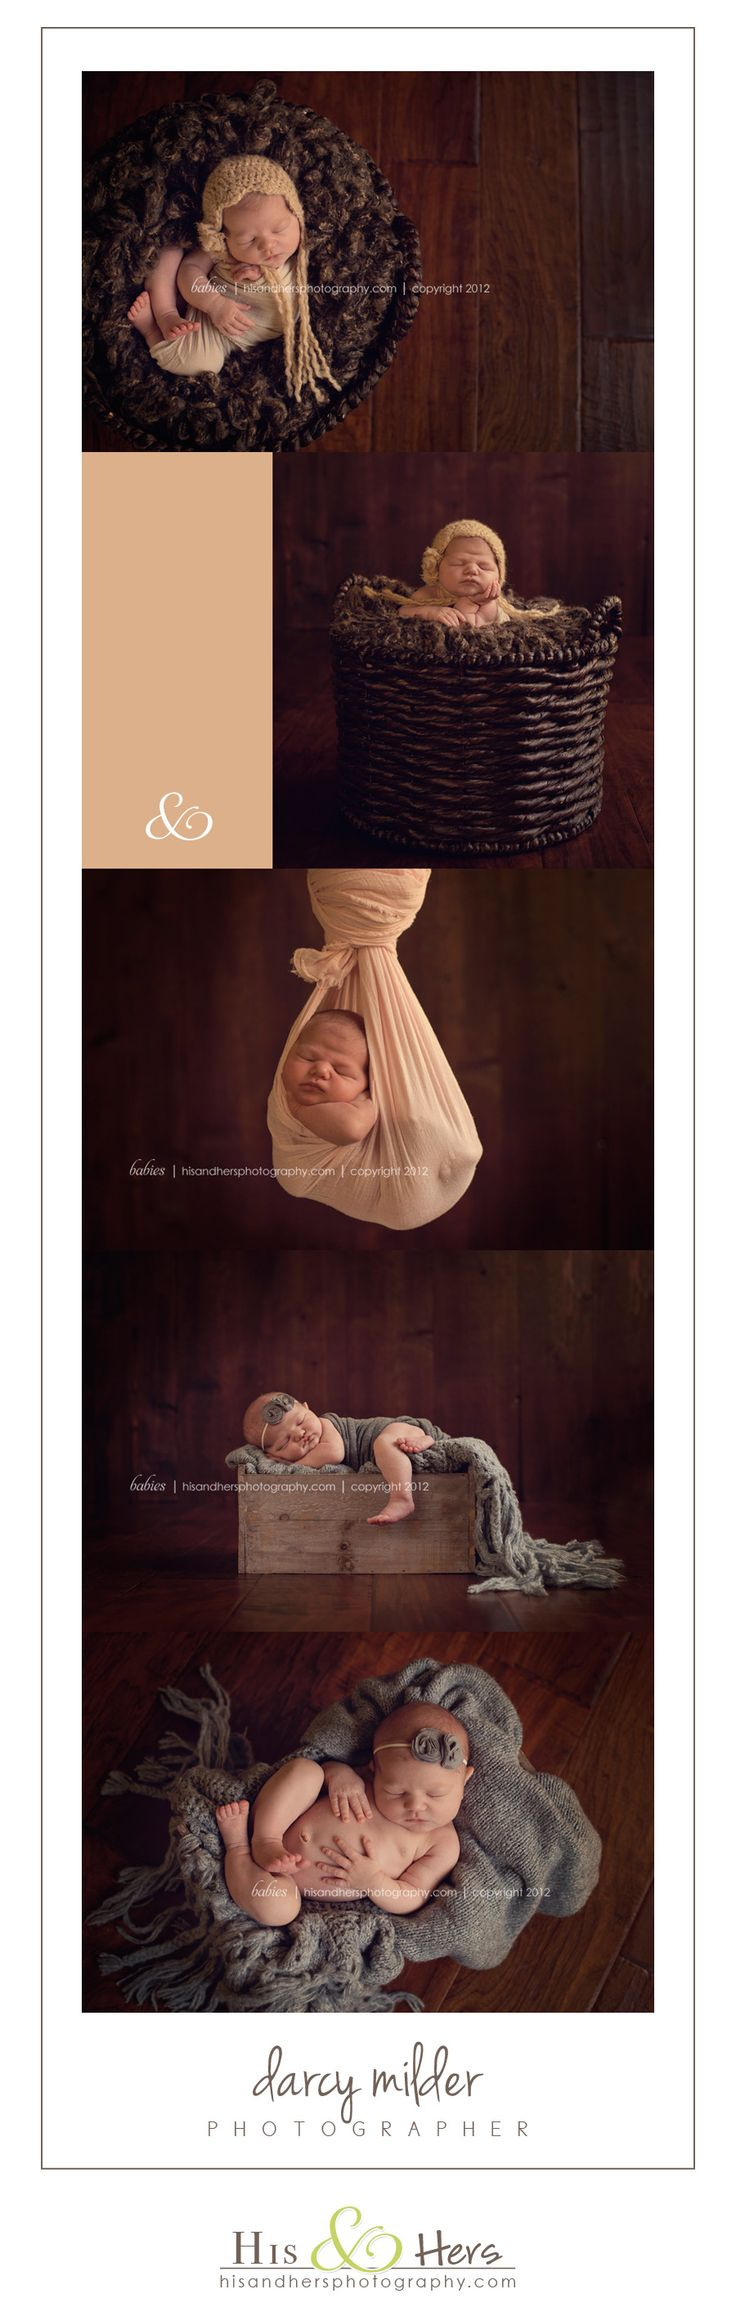 iowa newborn photographer darcy milder | his and hers | des moines, iowa